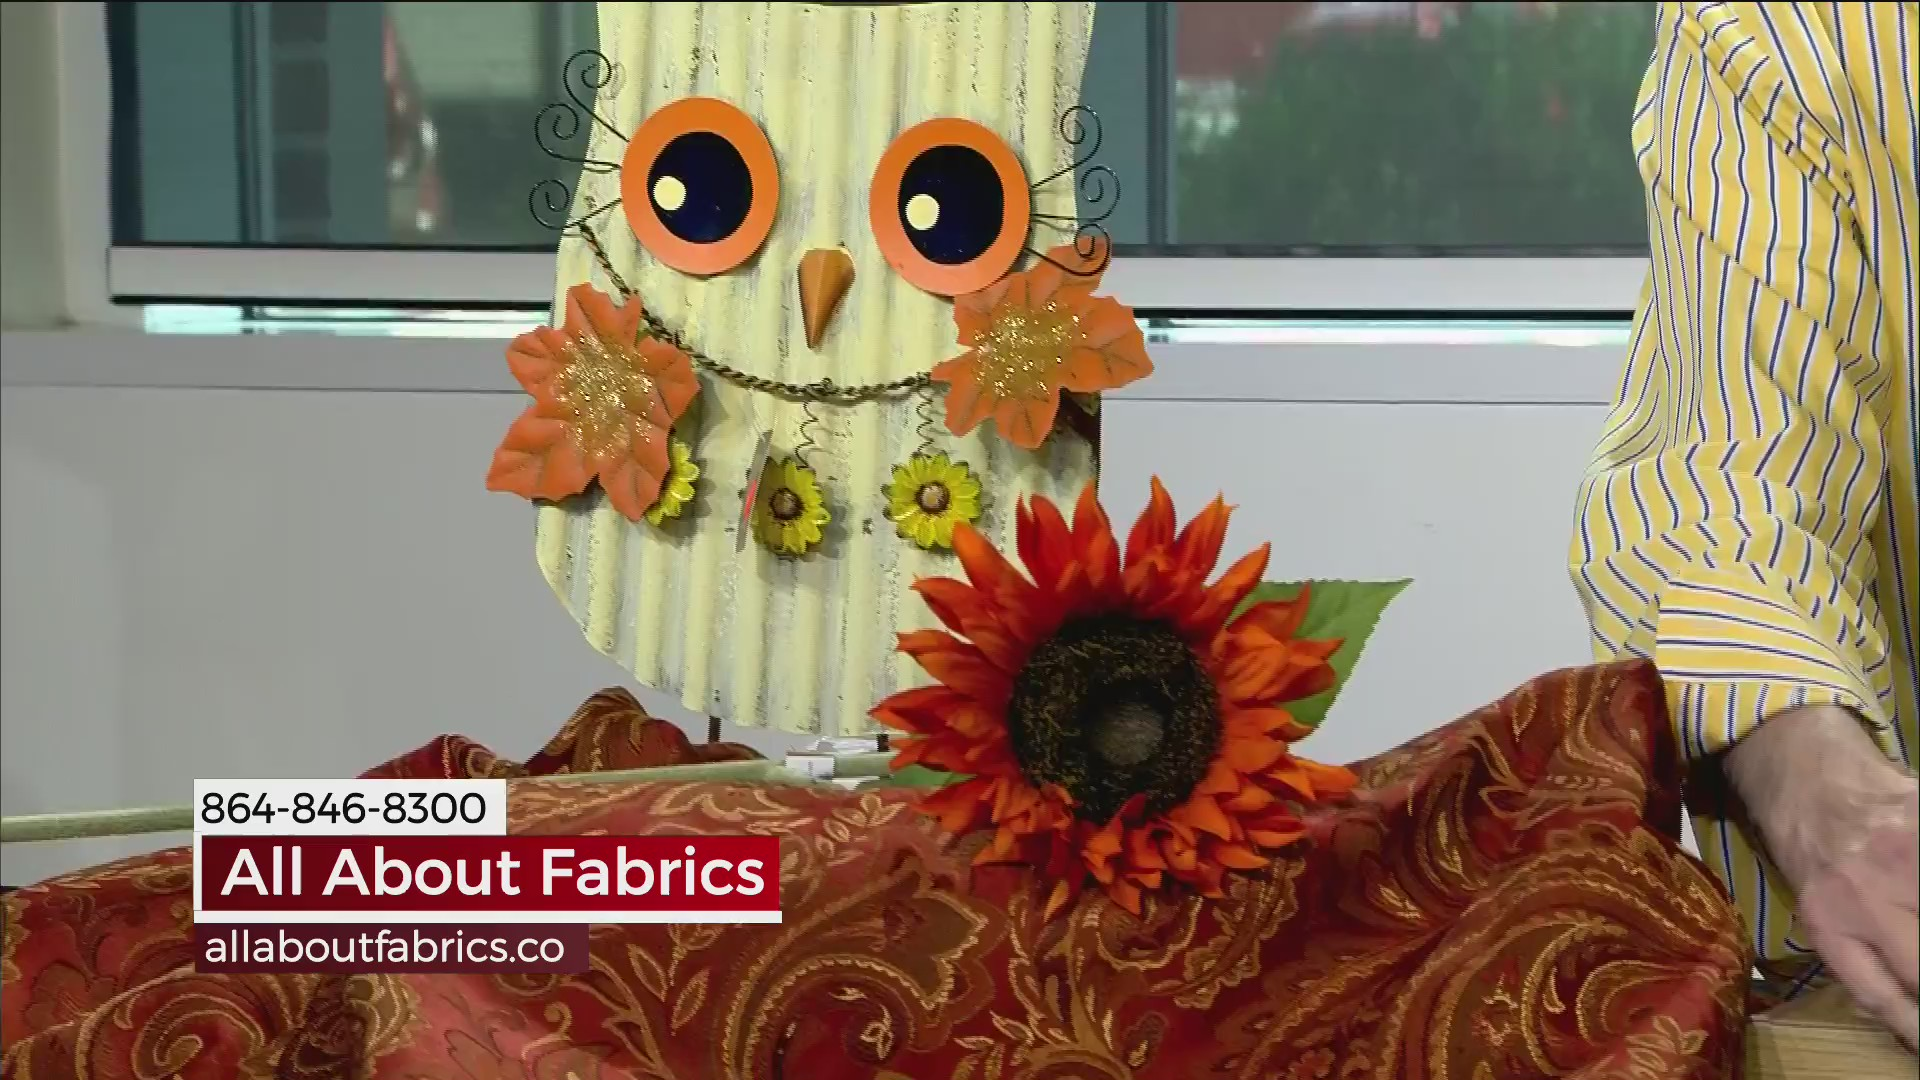 All About Fabrics Opens This Weekend To The Public